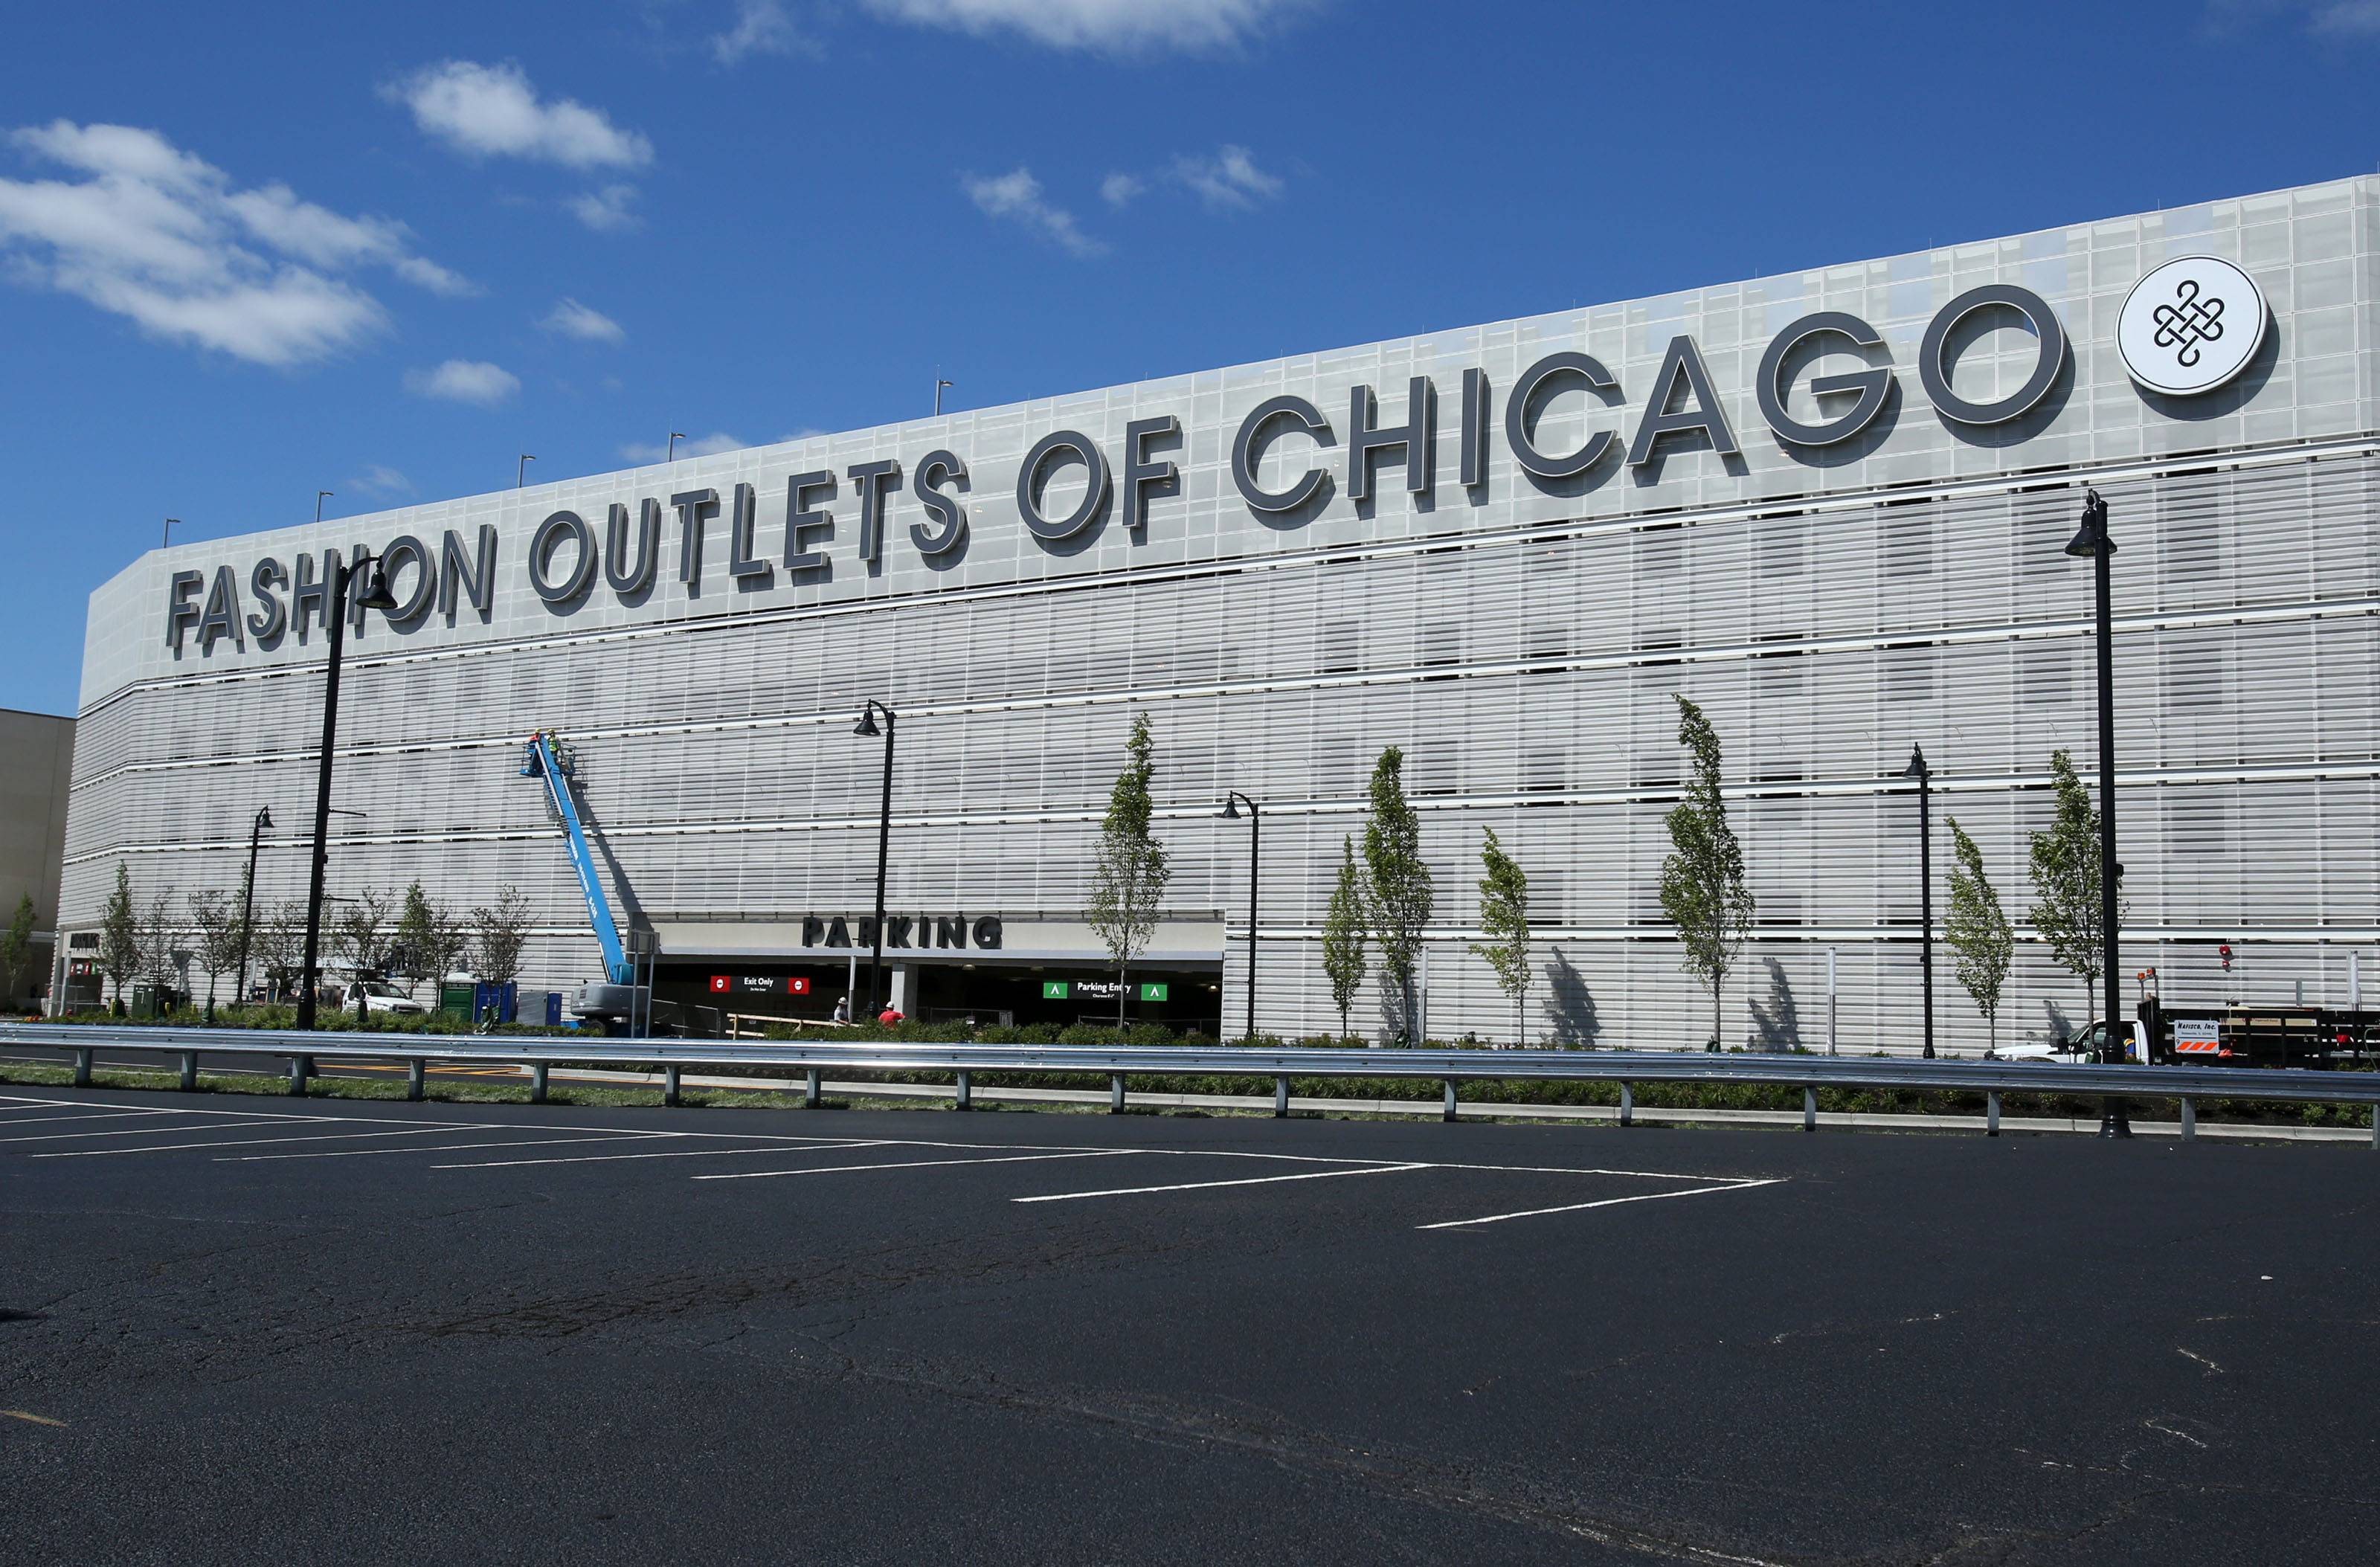 Fashion outlet in chicago 56